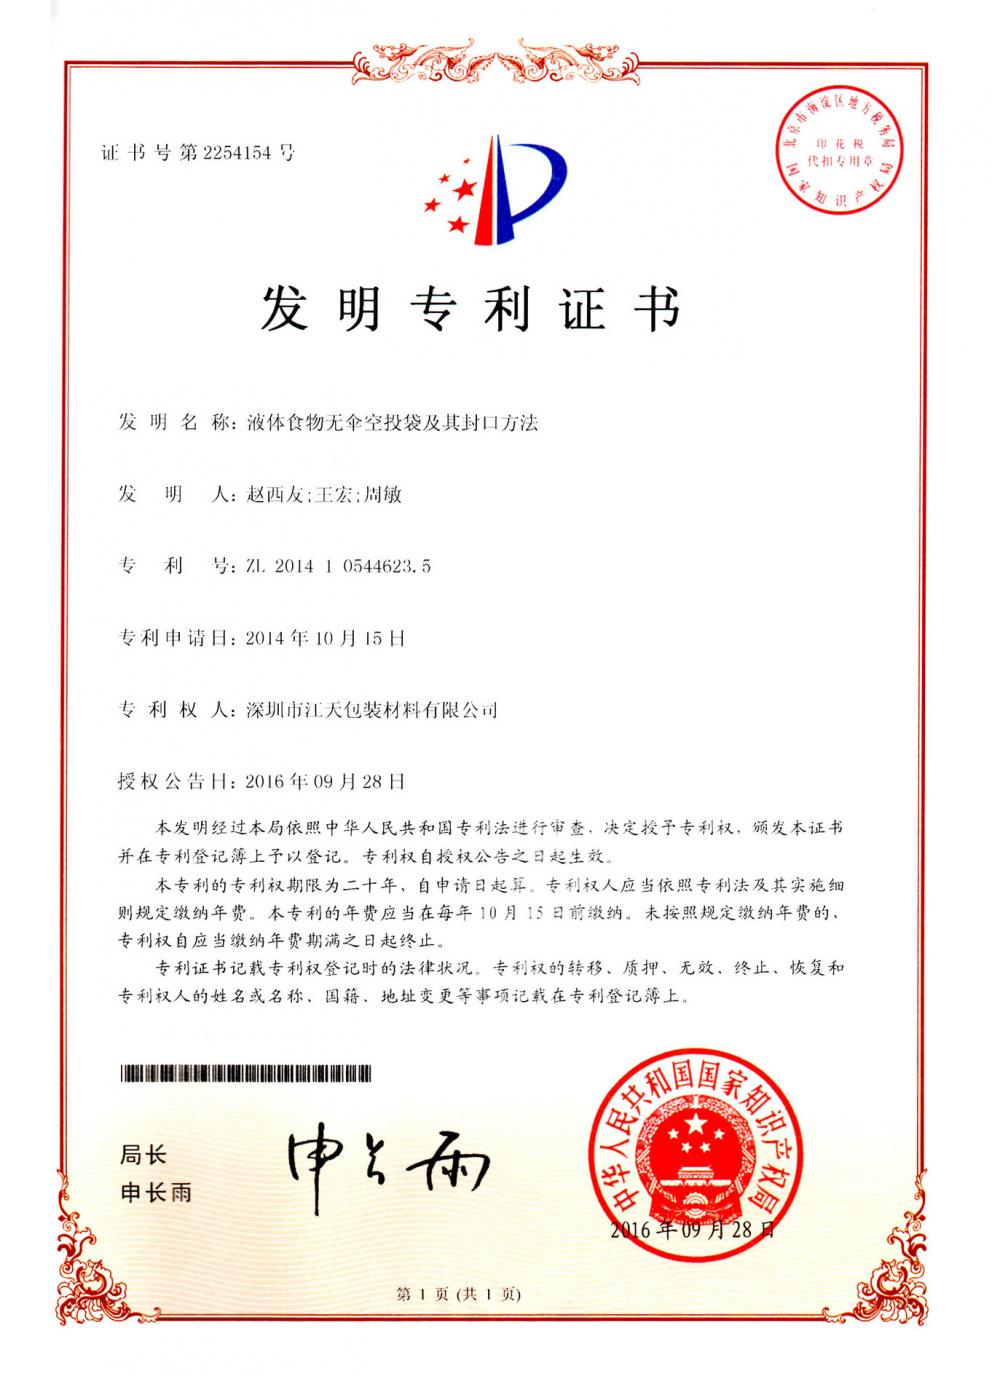 Invention certificate of patent